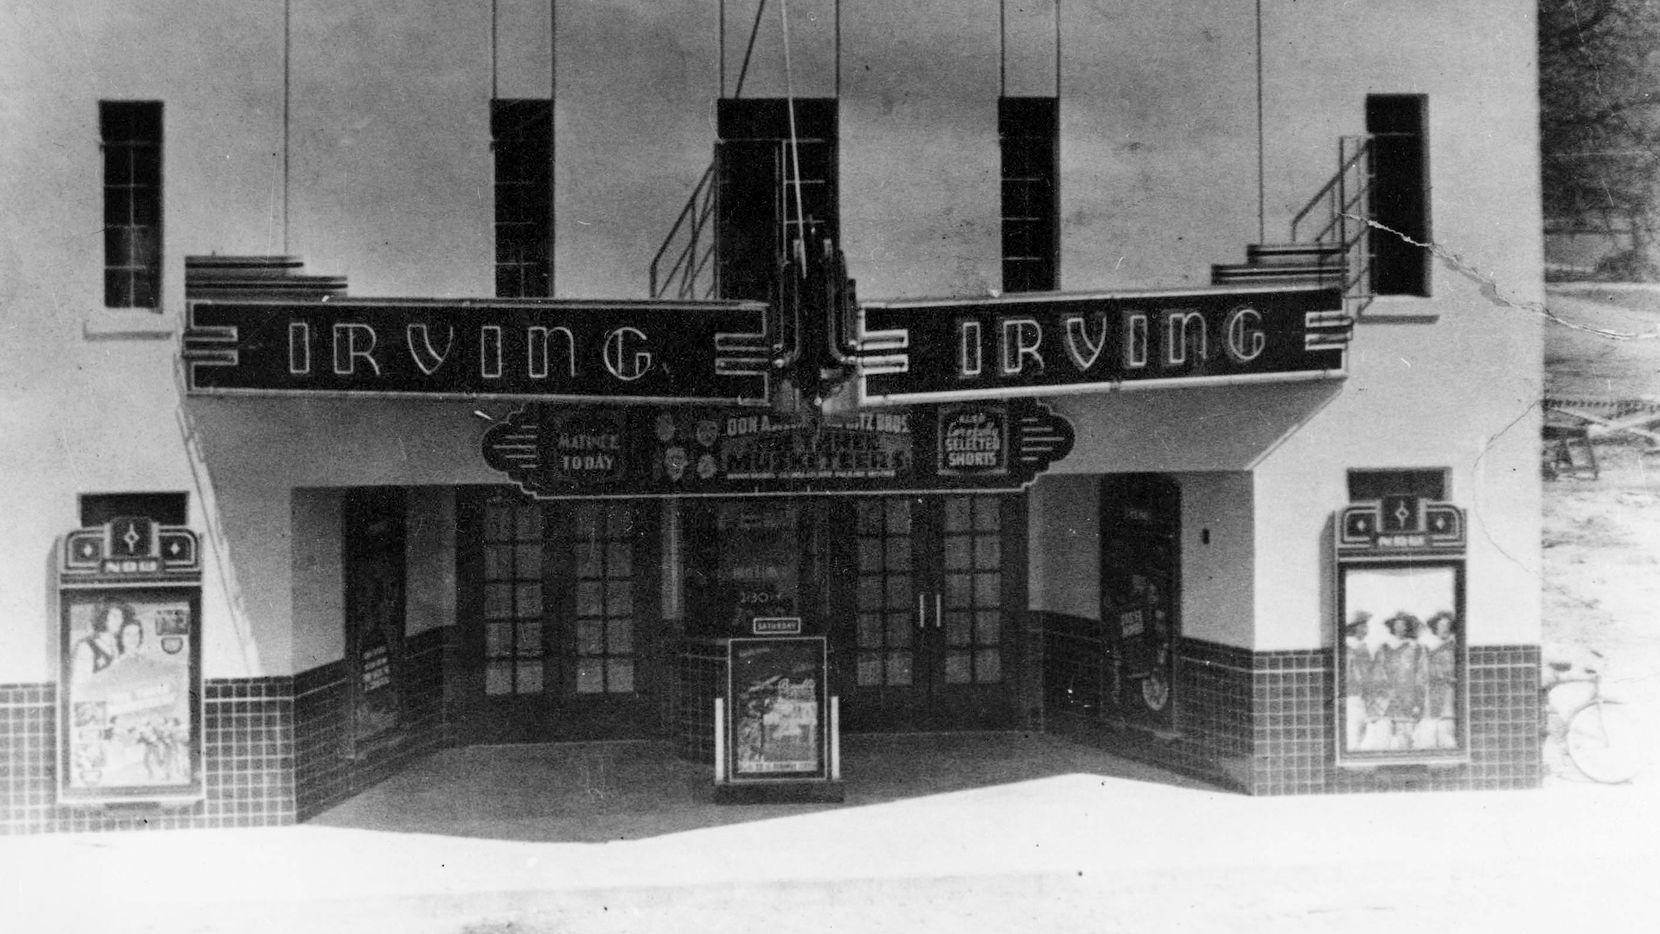 The Irving Theater, which looks like the Alamo, was the city's original cinema.